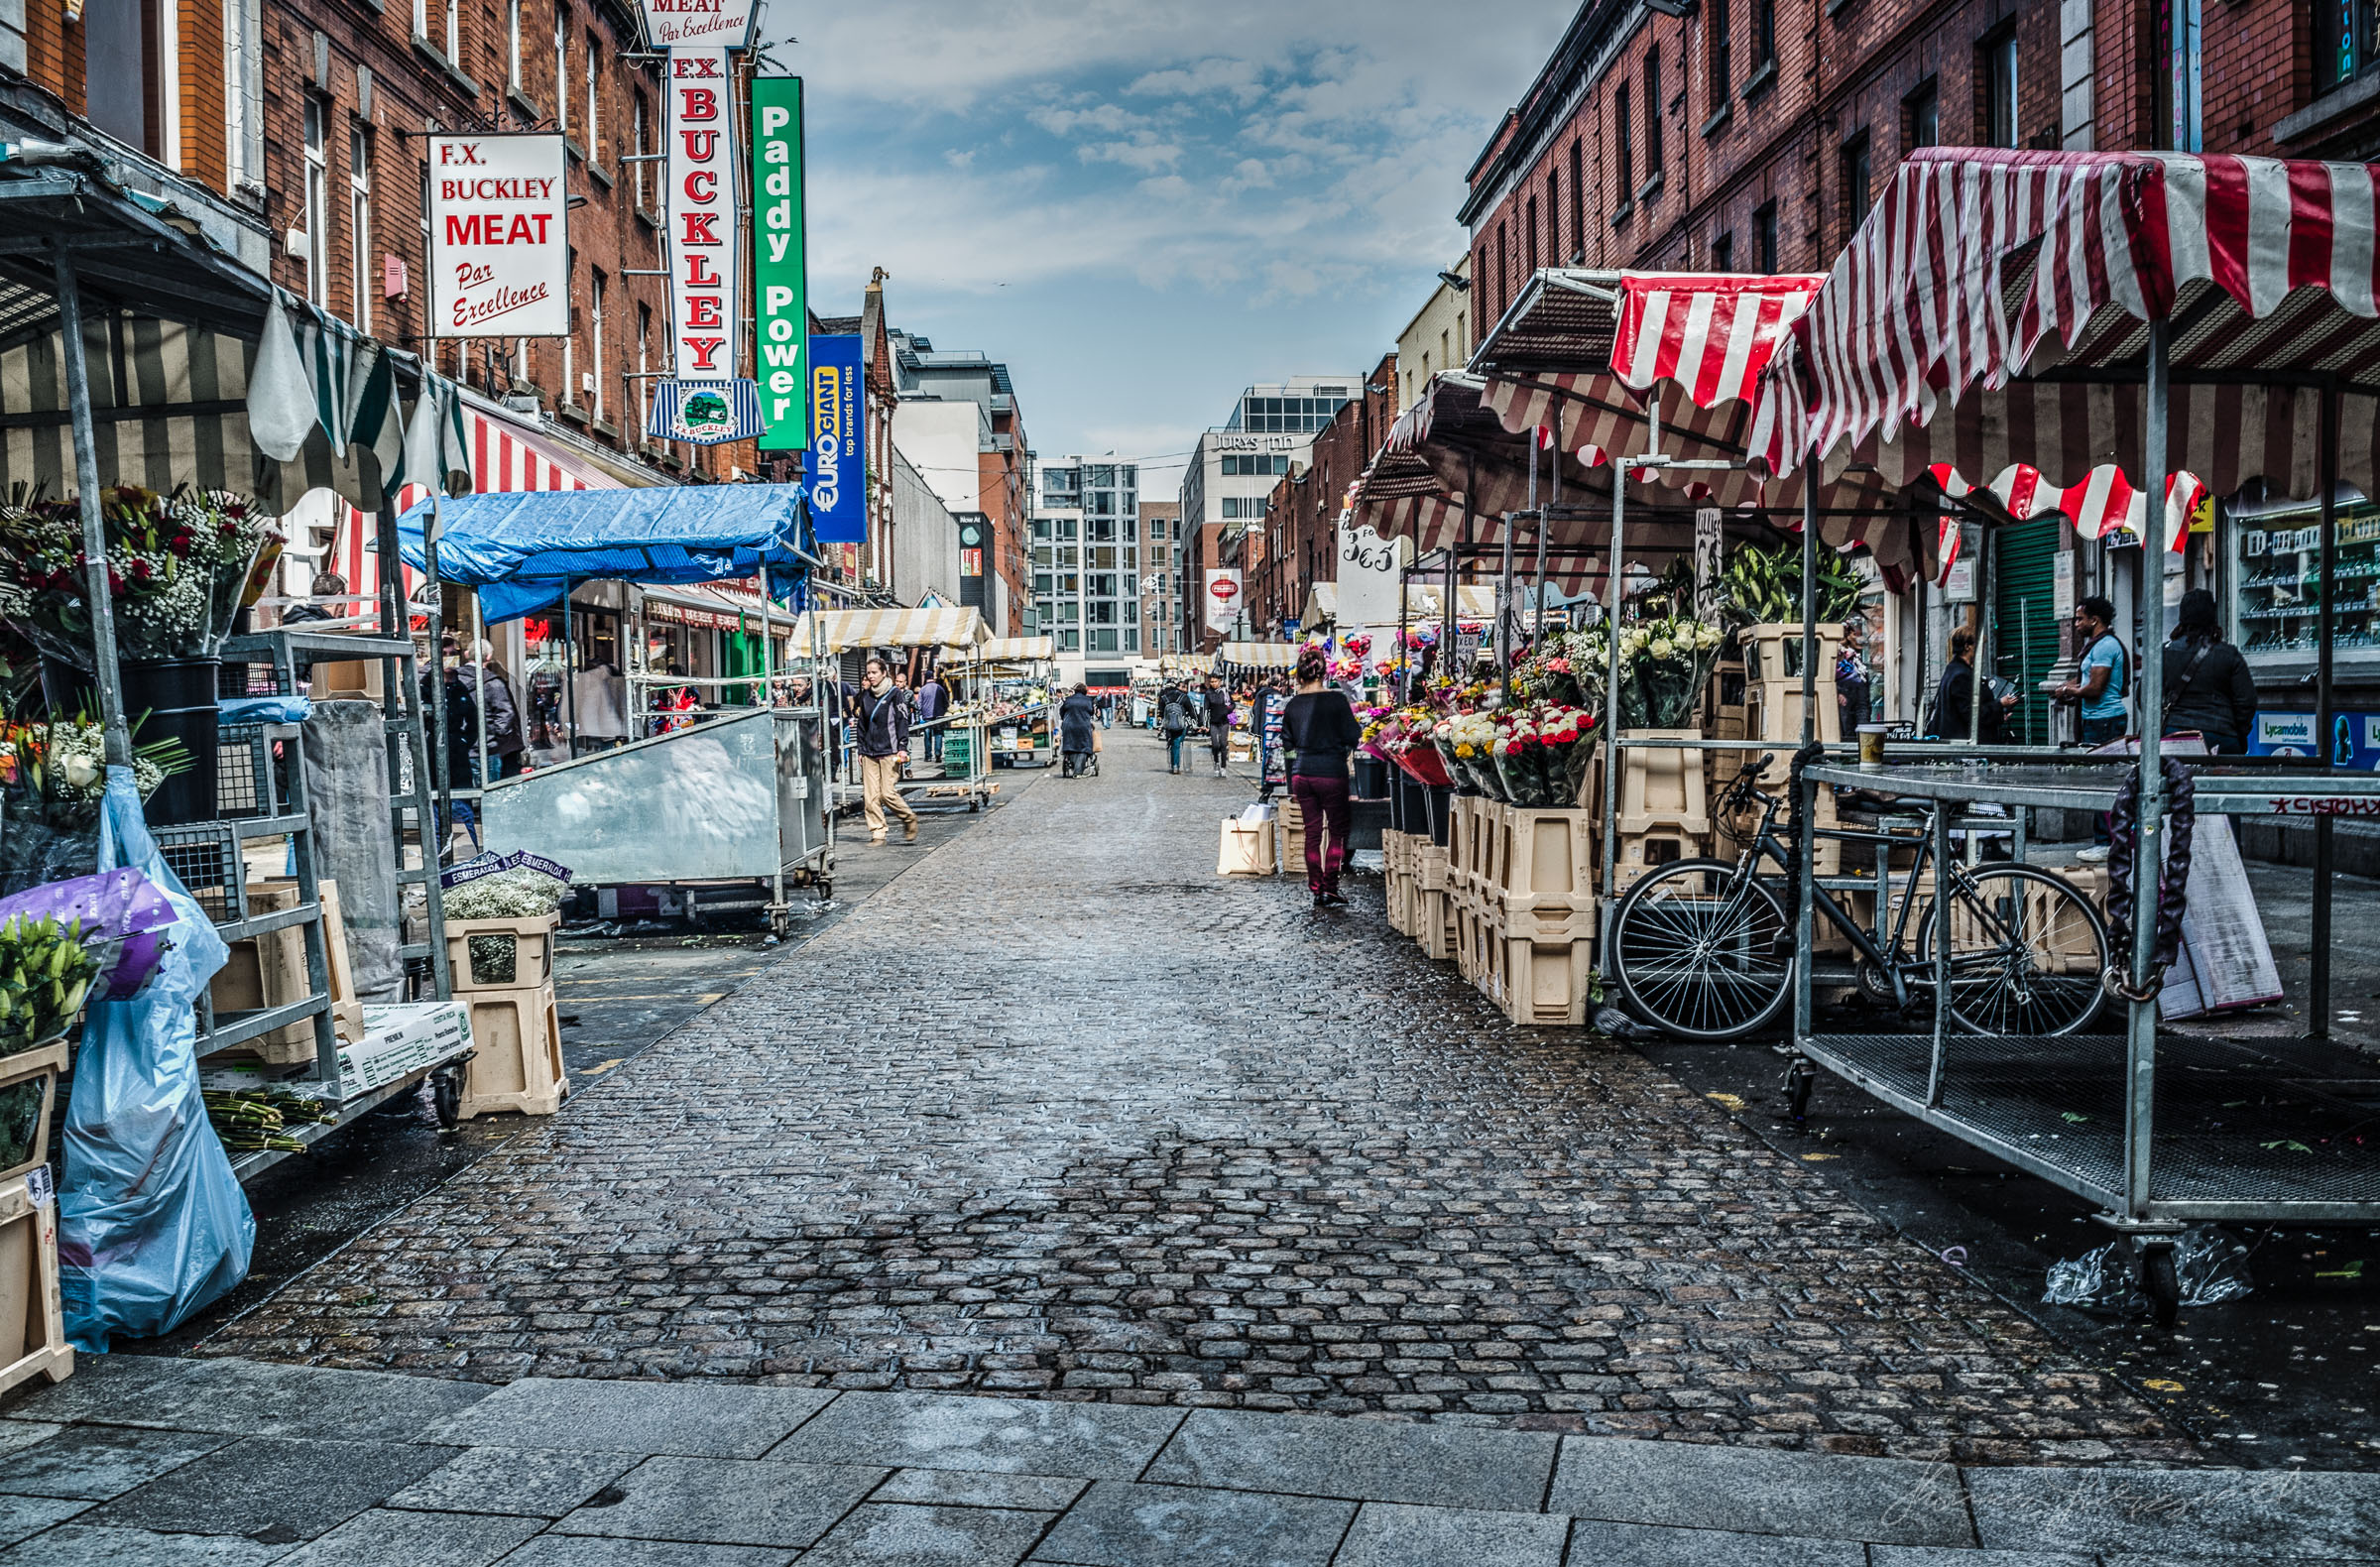 Moore Street This afternoon!